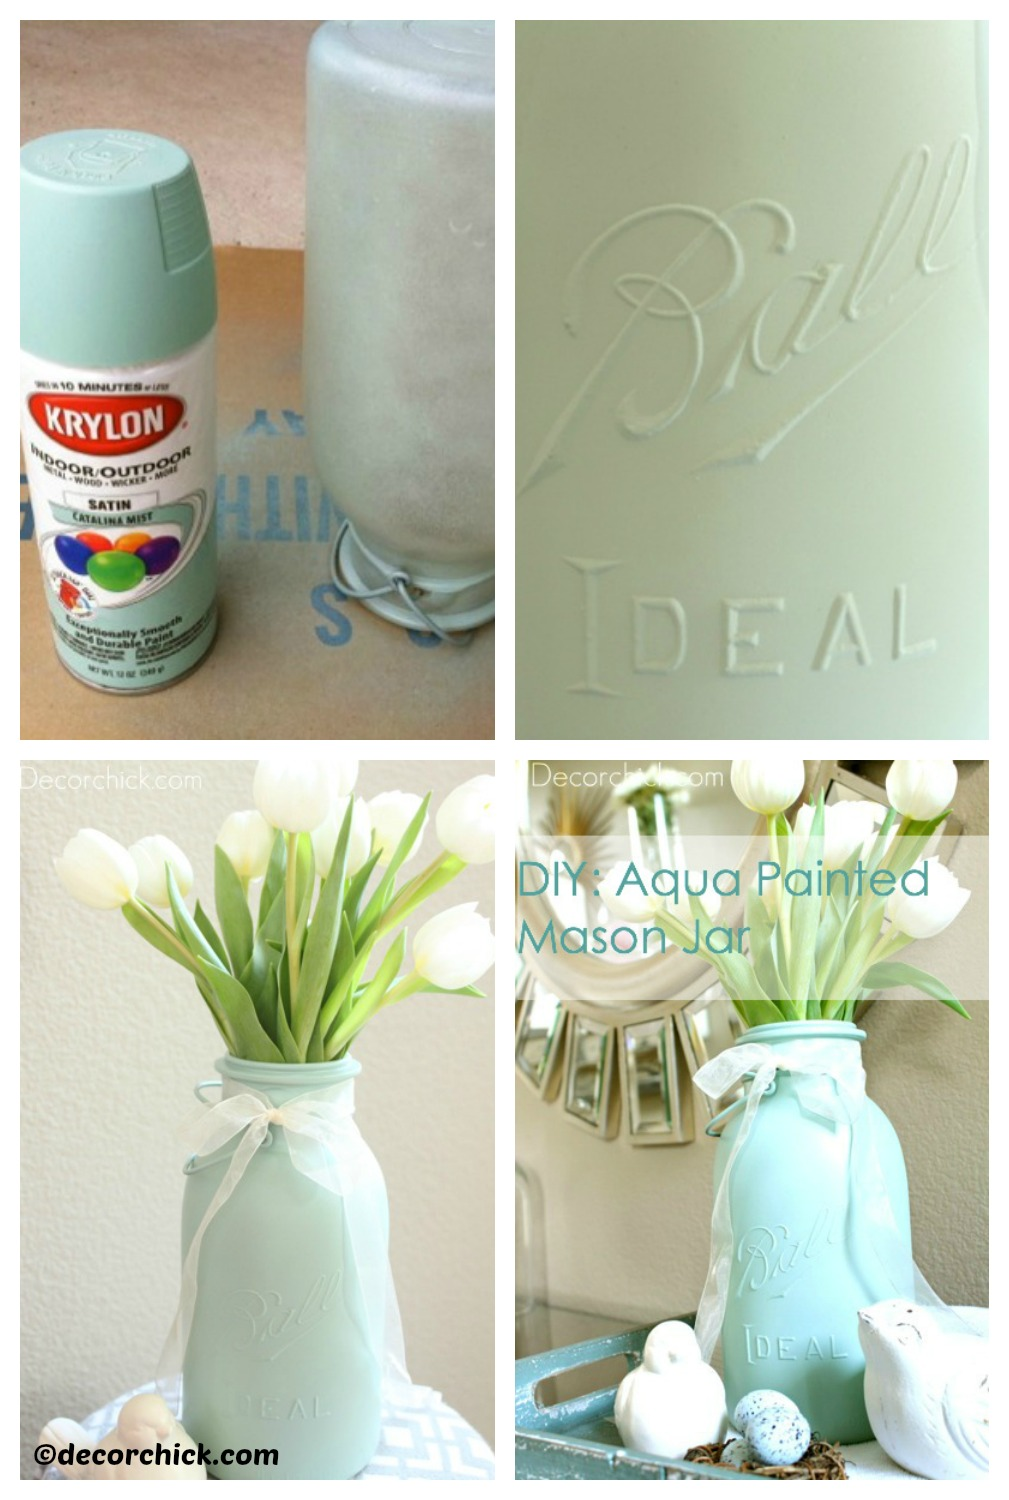 How to make a Painted Mason Jar Vase